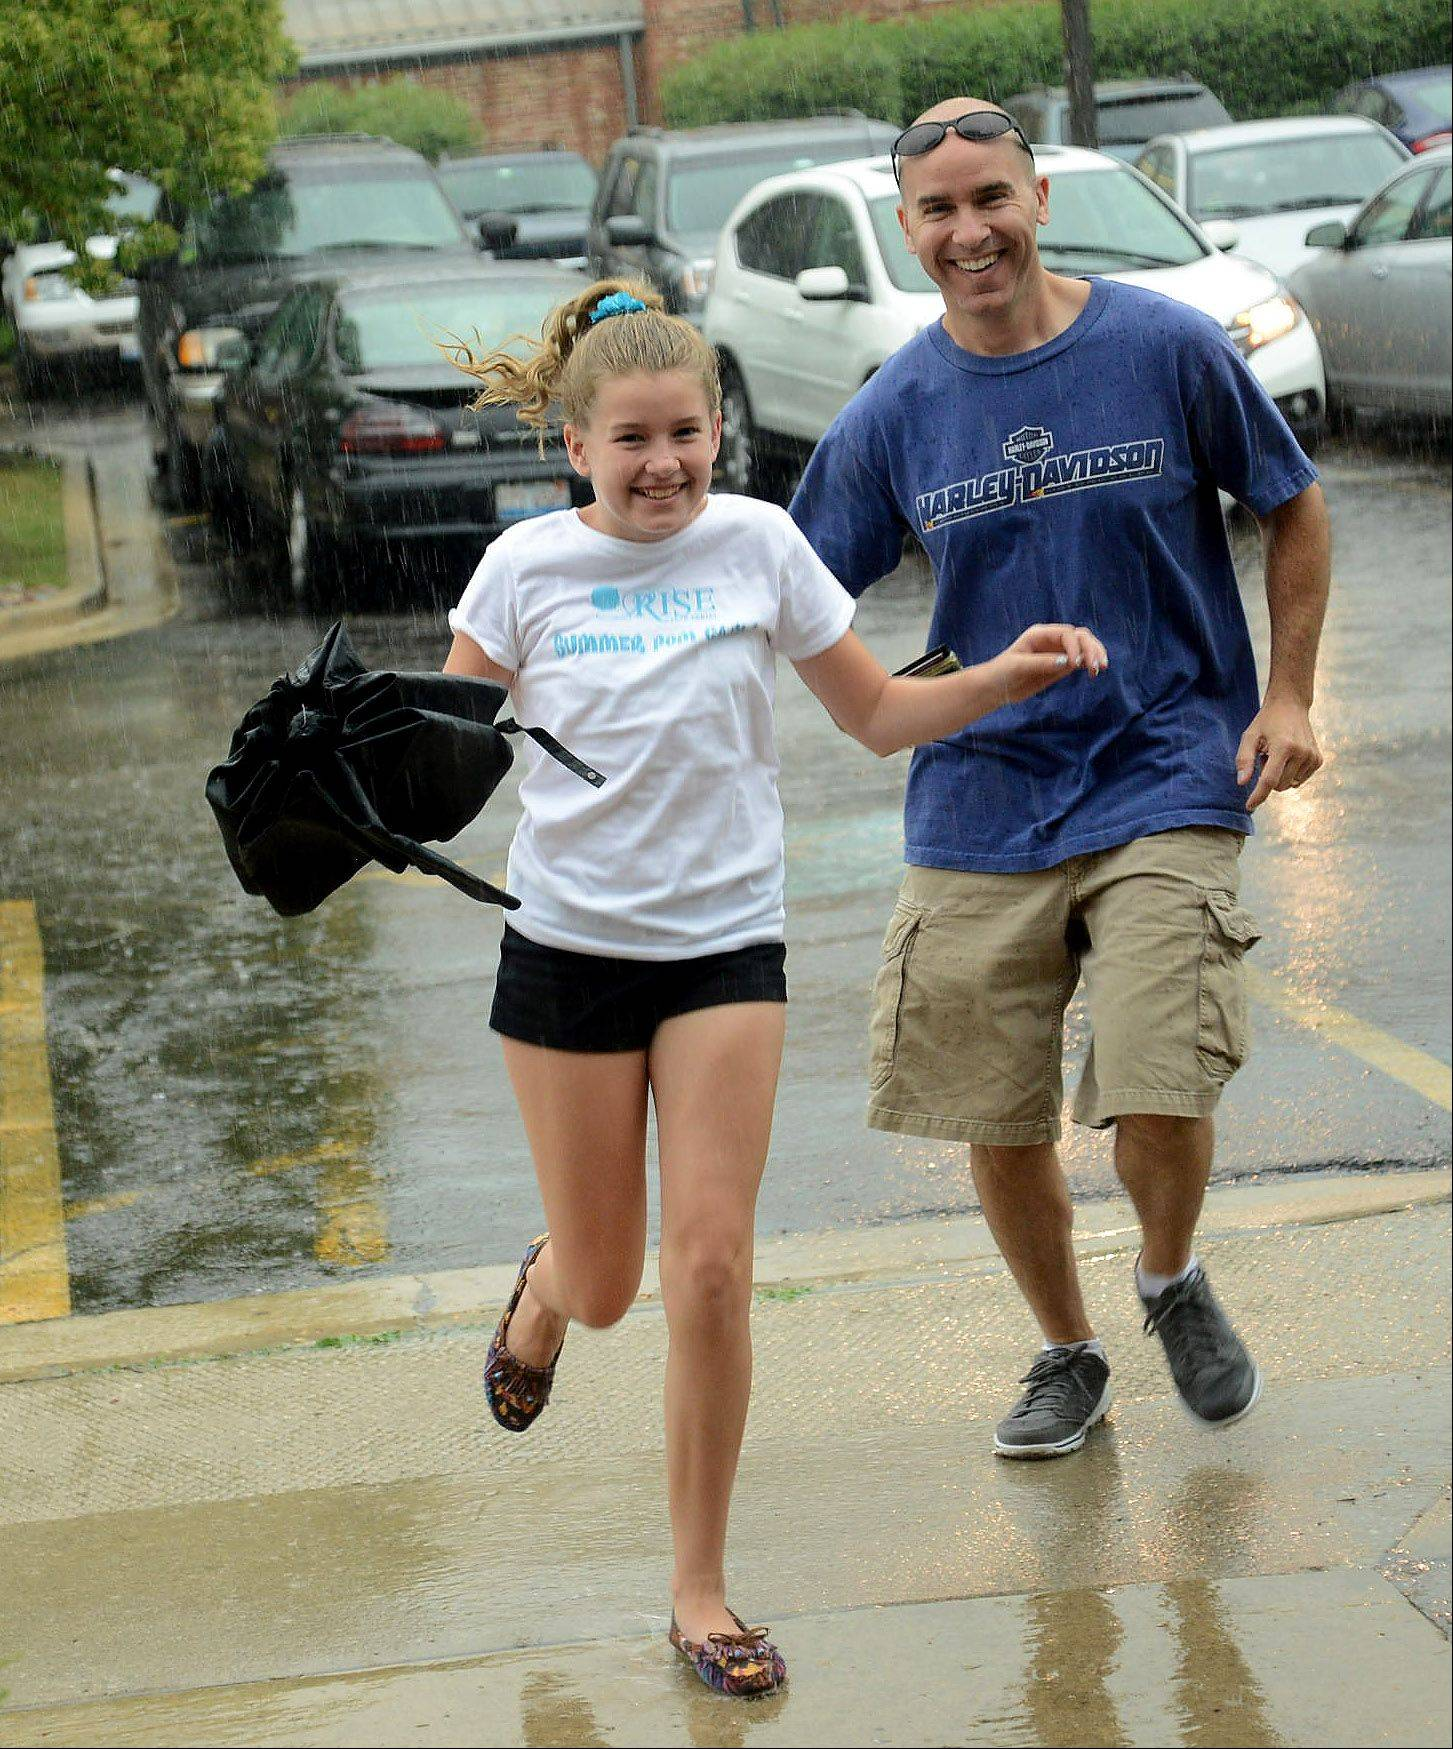 Chris and Madison Melbourn of Schaumburg take cover from Friday's rain in Schaumburg.